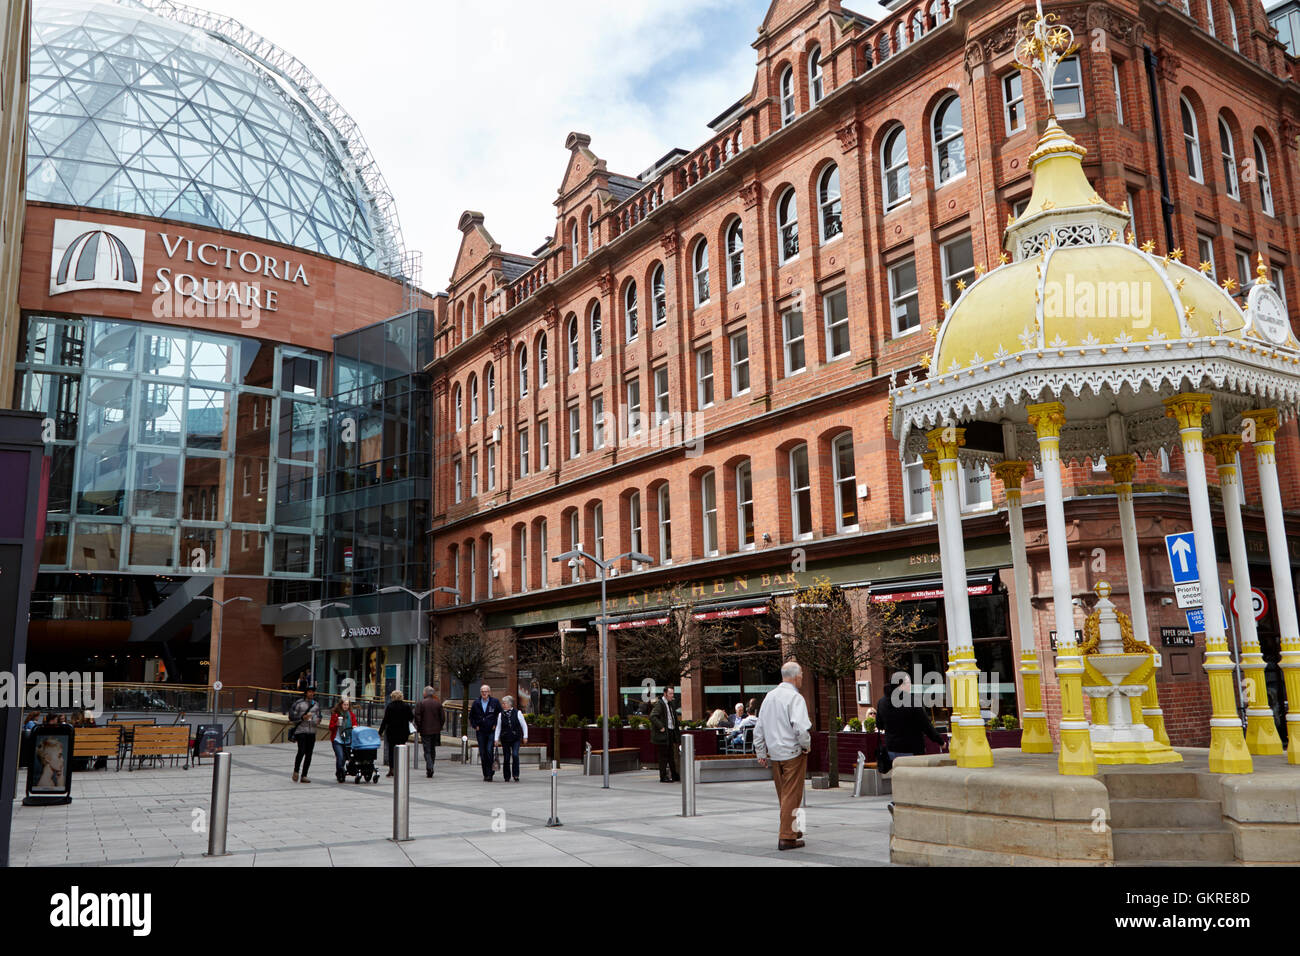 Victoria Square Shopping Centre Jaffe Fountain And The Kitchen Bar Belfast  City Centre   Stock Image